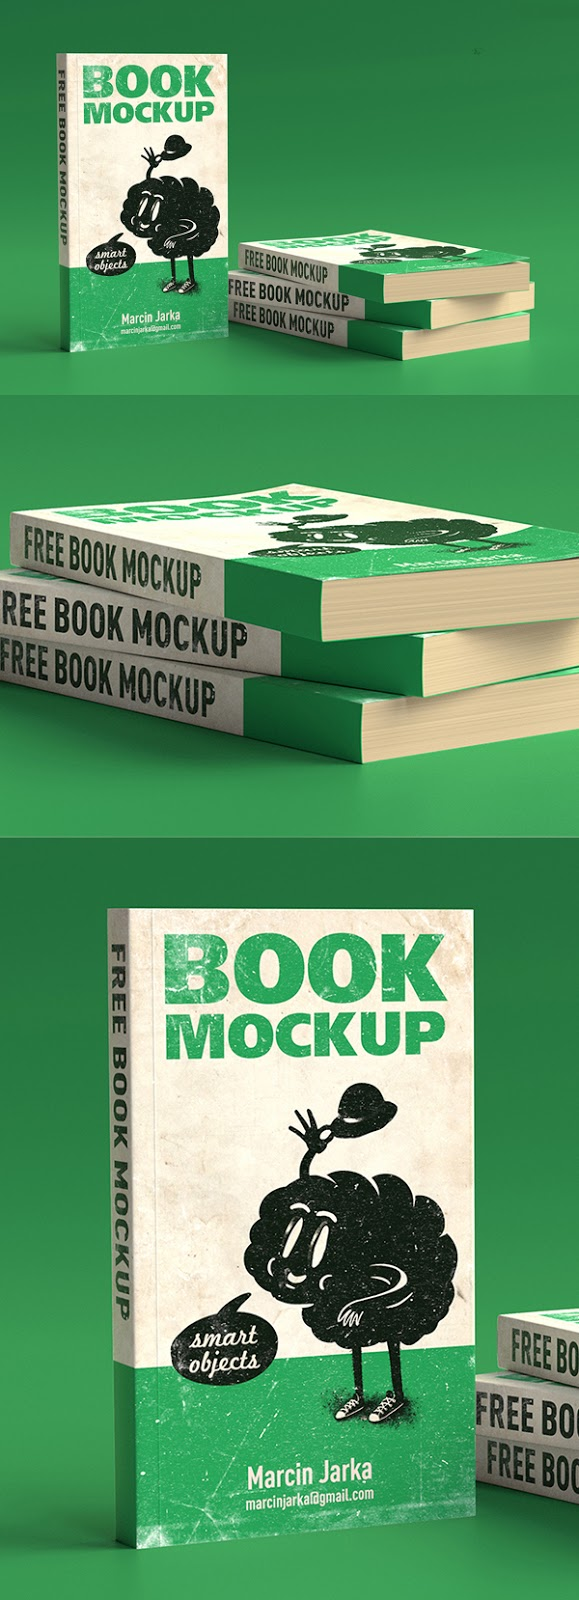 Download Free Mockup PSD 2018 - Free Book Mockup PSD Templates